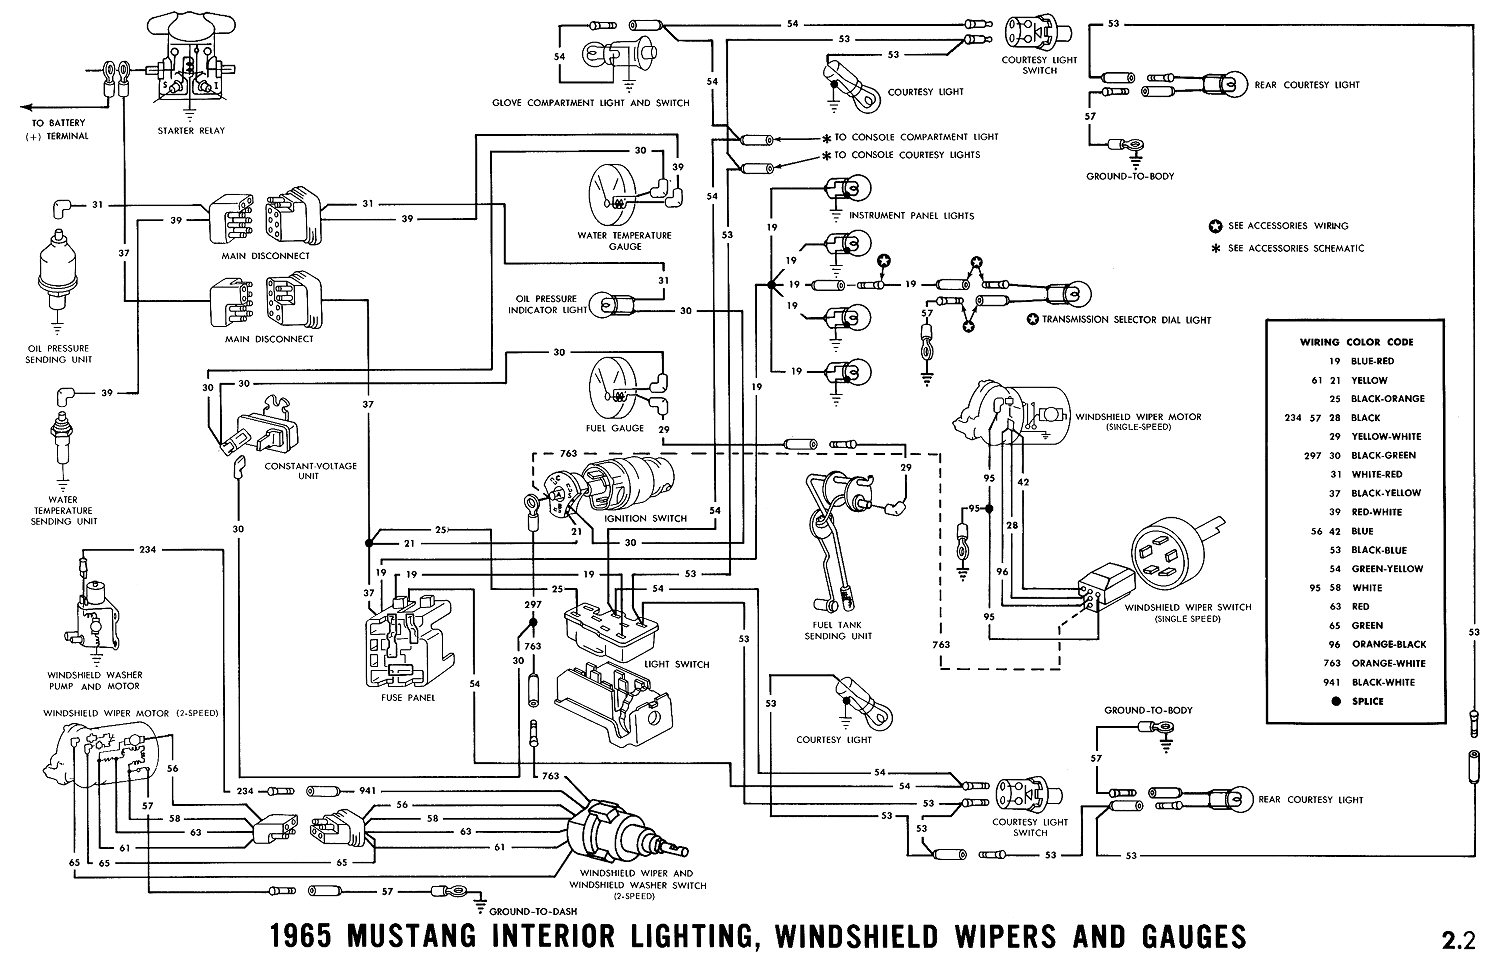 El Ritningar 1990 Mustang 5 0 Engine Wiring Diagram 1965 Interior Lightning Winshield Wiper And Gauges Schematic